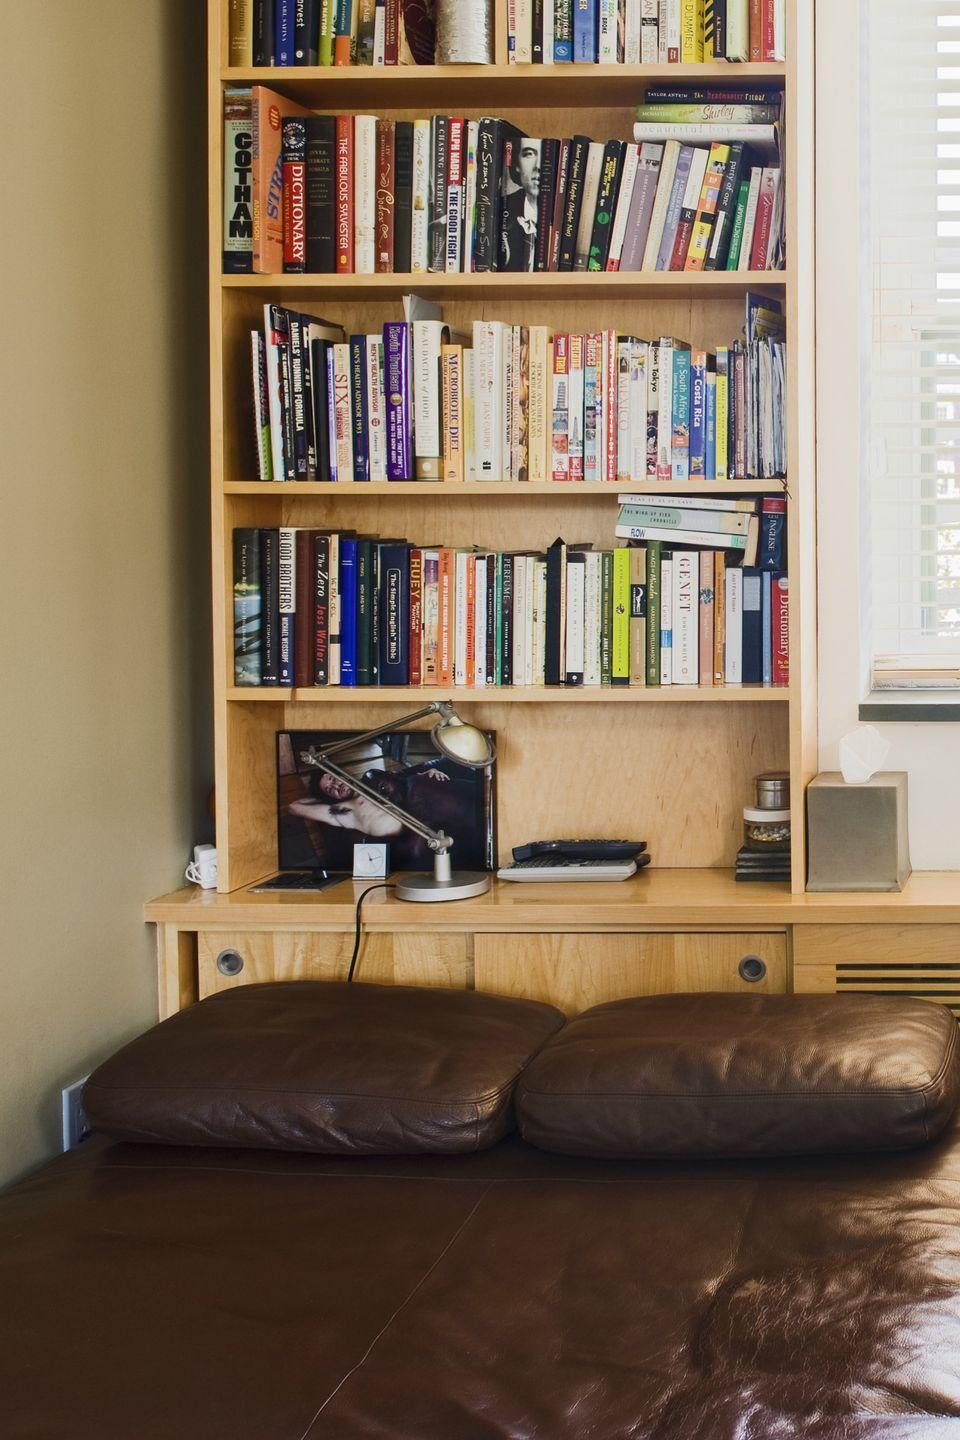 """<p>Corral an unwieldy bedroom reading pile with a small bookshelf next to your nightstand so you can <a href=""""https://www.womansday.com/life/entertainment/g25322040/best-nonfiction-books-2019/"""" rel=""""nofollow noopener"""" target=""""_blank"""" data-ylk=""""slk:read all night long"""" class=""""link rapid-noclick-resp"""">read all night long</a>.</p><p><strong><a class=""""link rapid-noclick-resp"""" href=""""https://www.amazon.com/Rerii-Composite-Standing-Organizer-Bookshelf/dp/B07D321981/?tag=syn-yahoo-20&ascsubtag=%5Bartid%7C10070.g.3310%5Bsrc%7Cyahoo-us"""" rel=""""nofollow noopener"""" target=""""_blank"""" data-ylk=""""slk:SHOP SMALL BOOKSHELVES"""">SHOP SMALL BOOKSHELVES</a></strong></p>"""